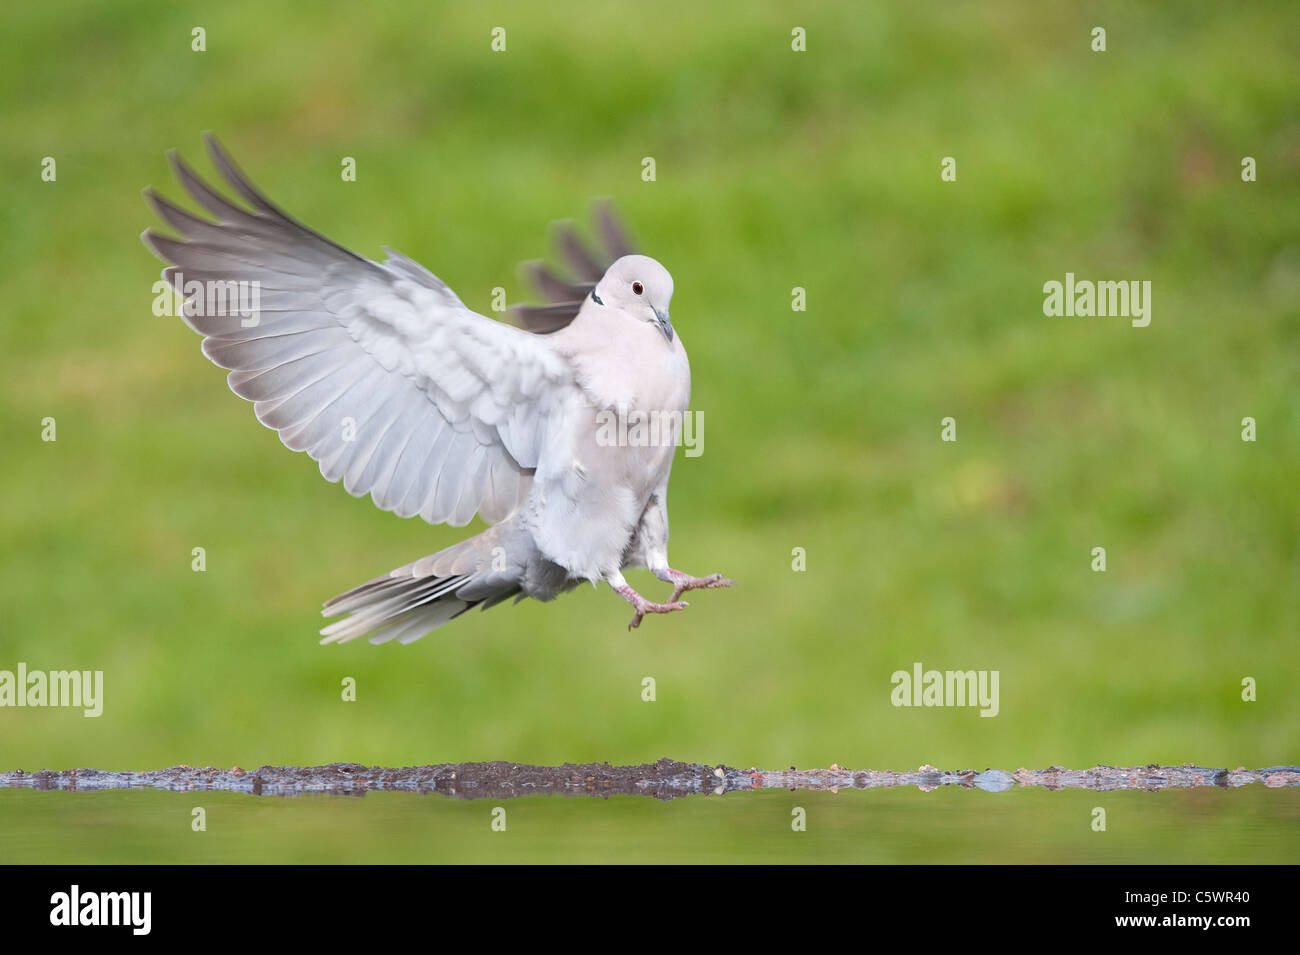 Eurasian Collared Dove (Streptopelia decaocto), adult alighting at garden pond. - Stock Image